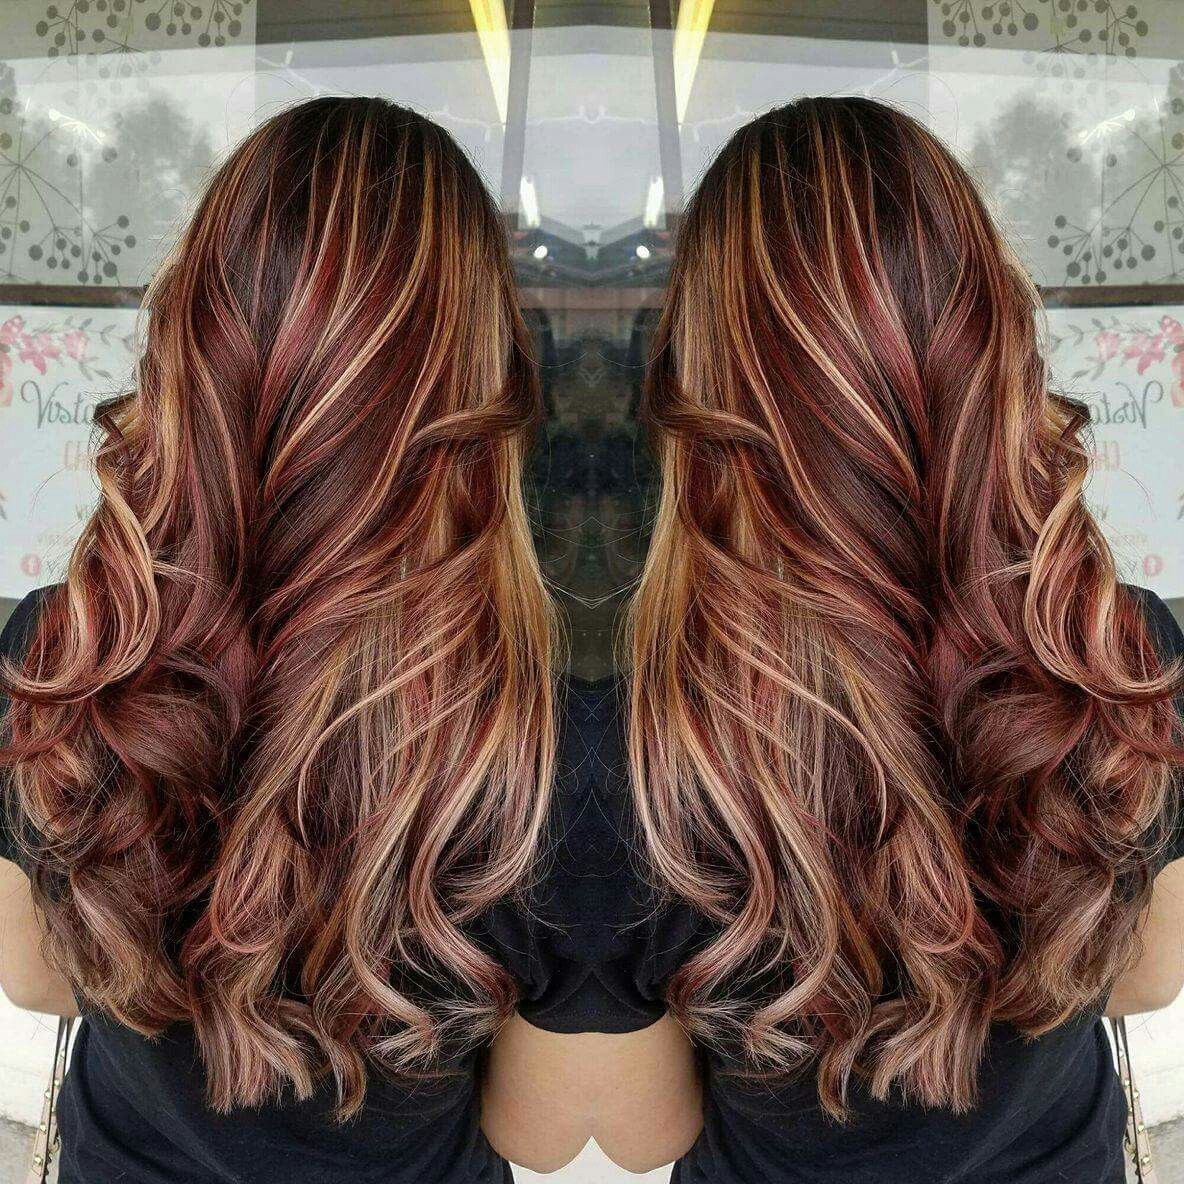 Red Hair Balayage Brown Hair Blonde Highlights